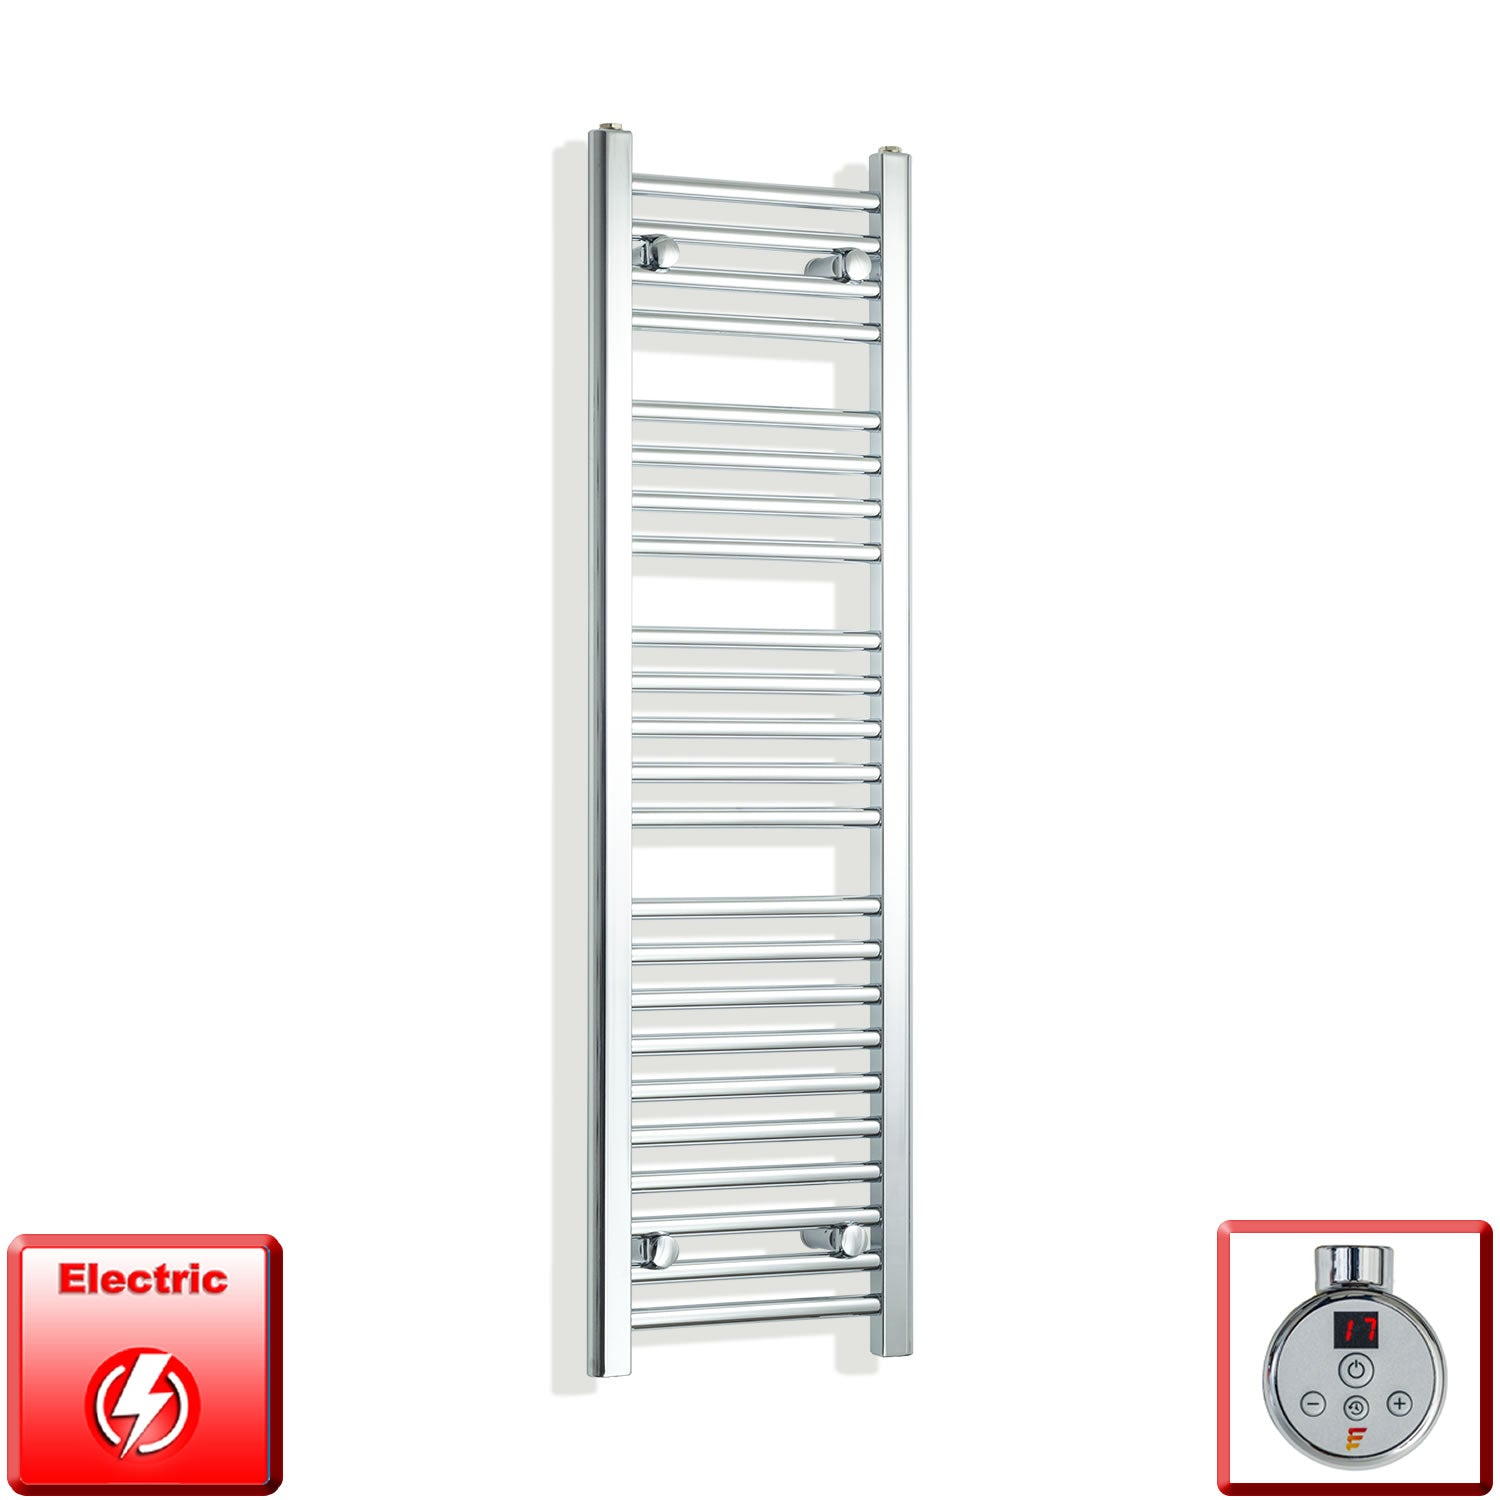 350mm Wide 1200mm High Pre-Filled Chrome Electric Towel Rail Radiator With Thermostatic DIGI Element